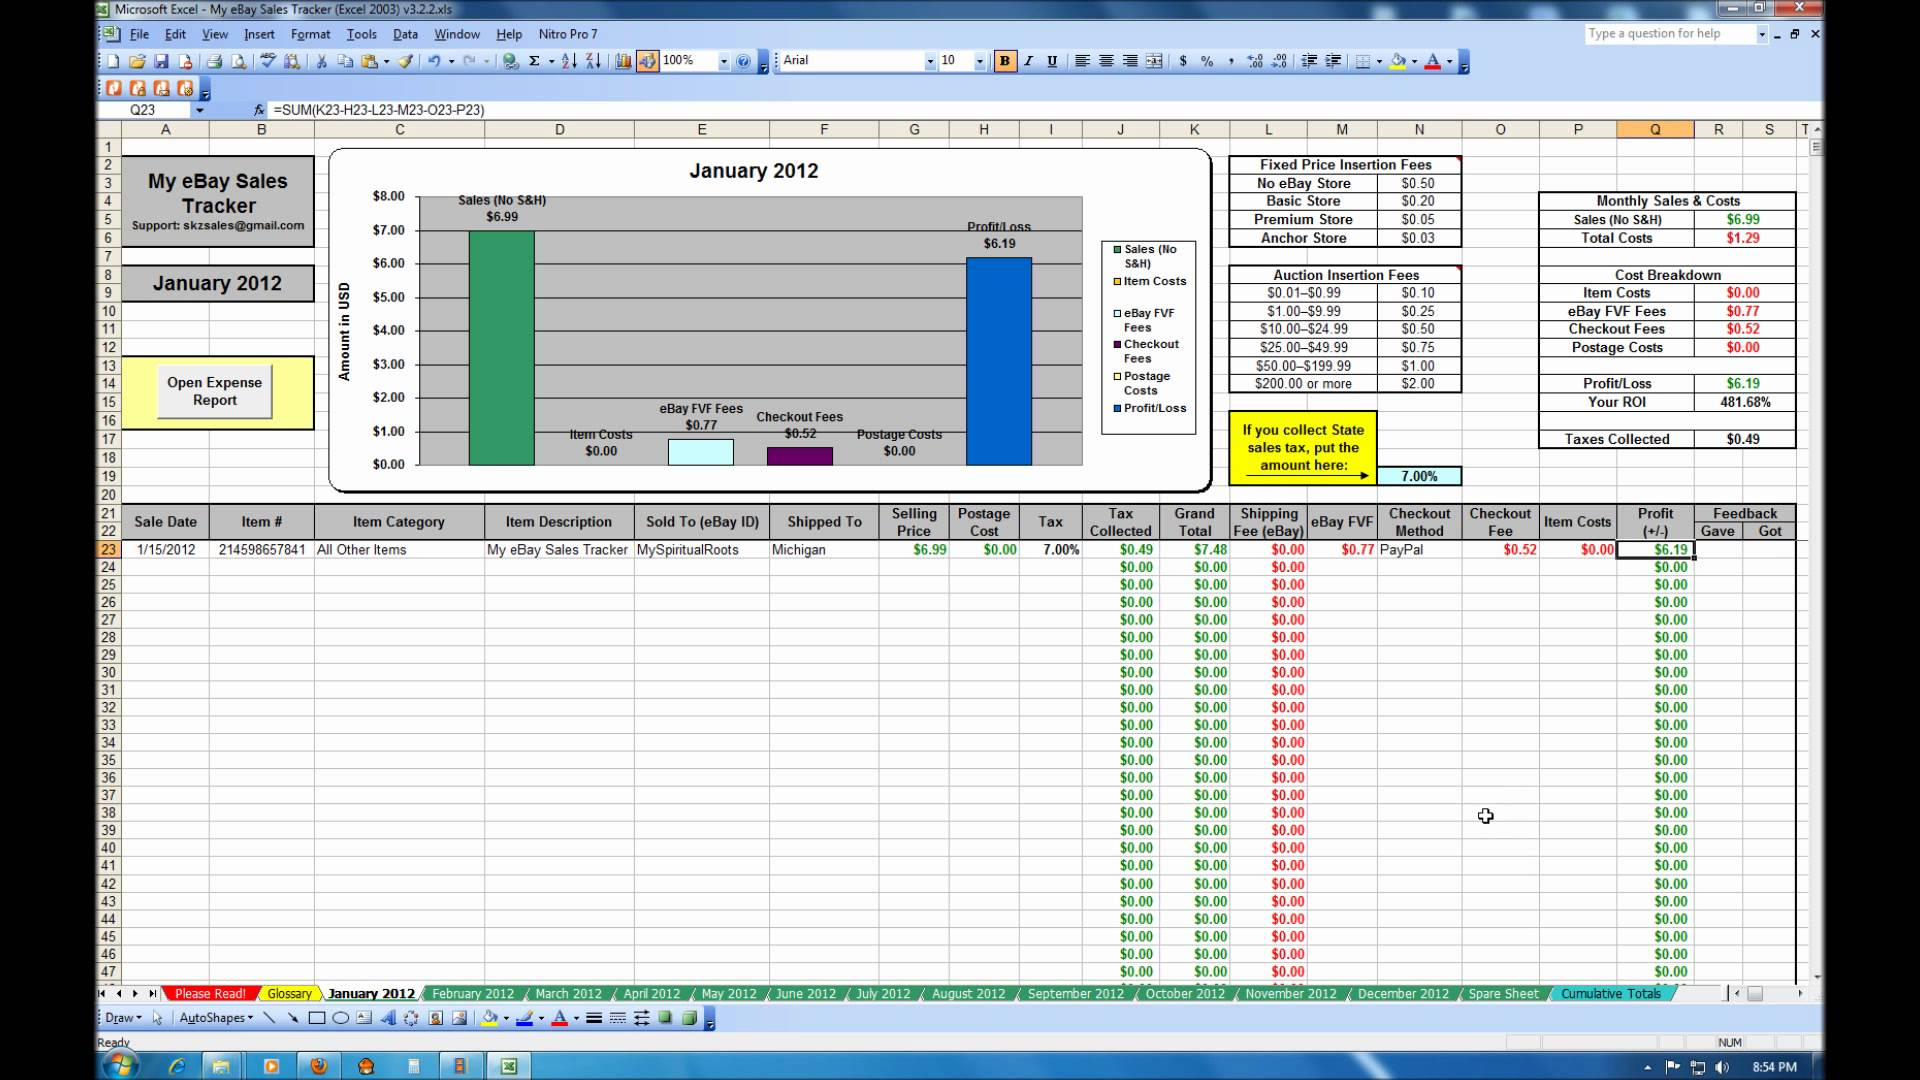 Spreadsheet For Sales Tracking As How To Make A Spreadsheet Numbers With Simple Sales Tracking Spreadsheet